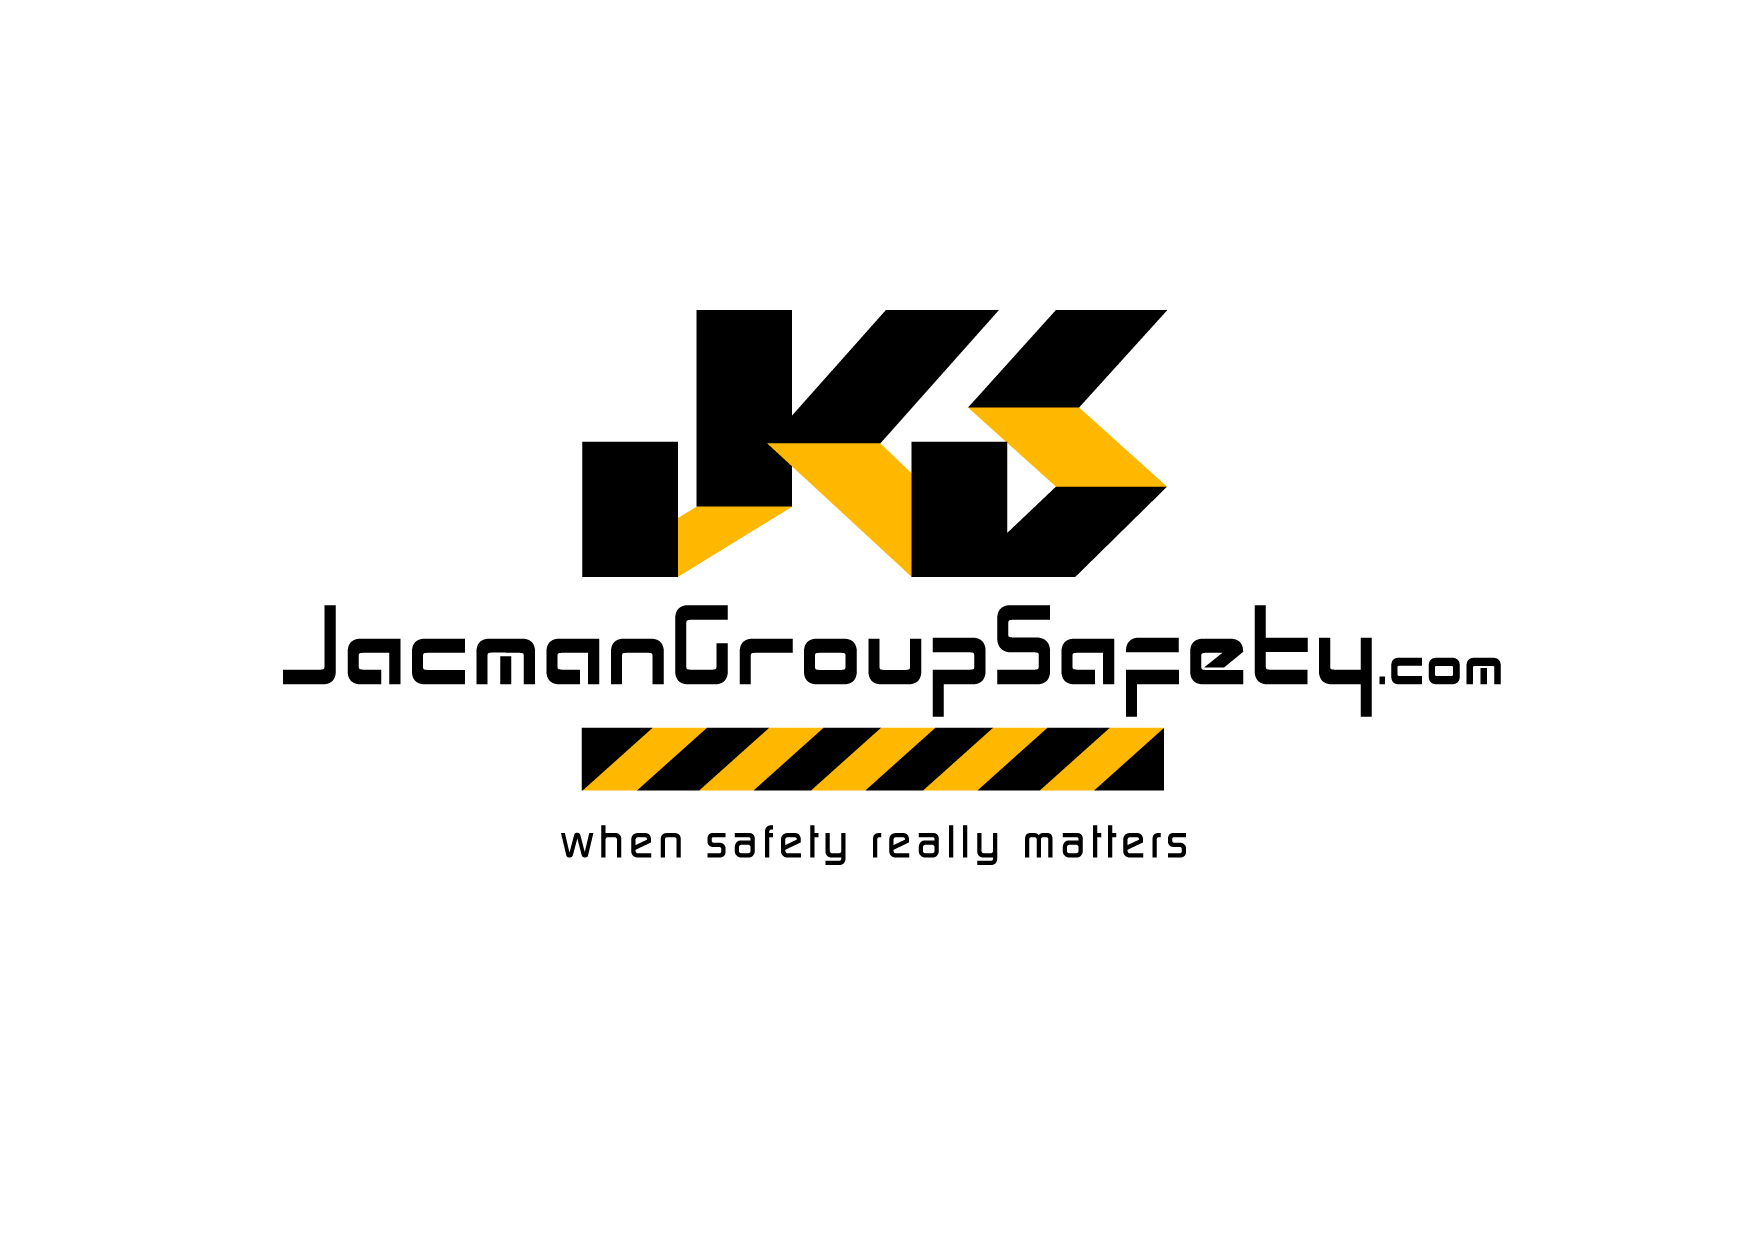 Logo Design by Wilfredo Mendoza - Entry No. 144 in the Logo Design Contest The Jacman Group Logo Design.